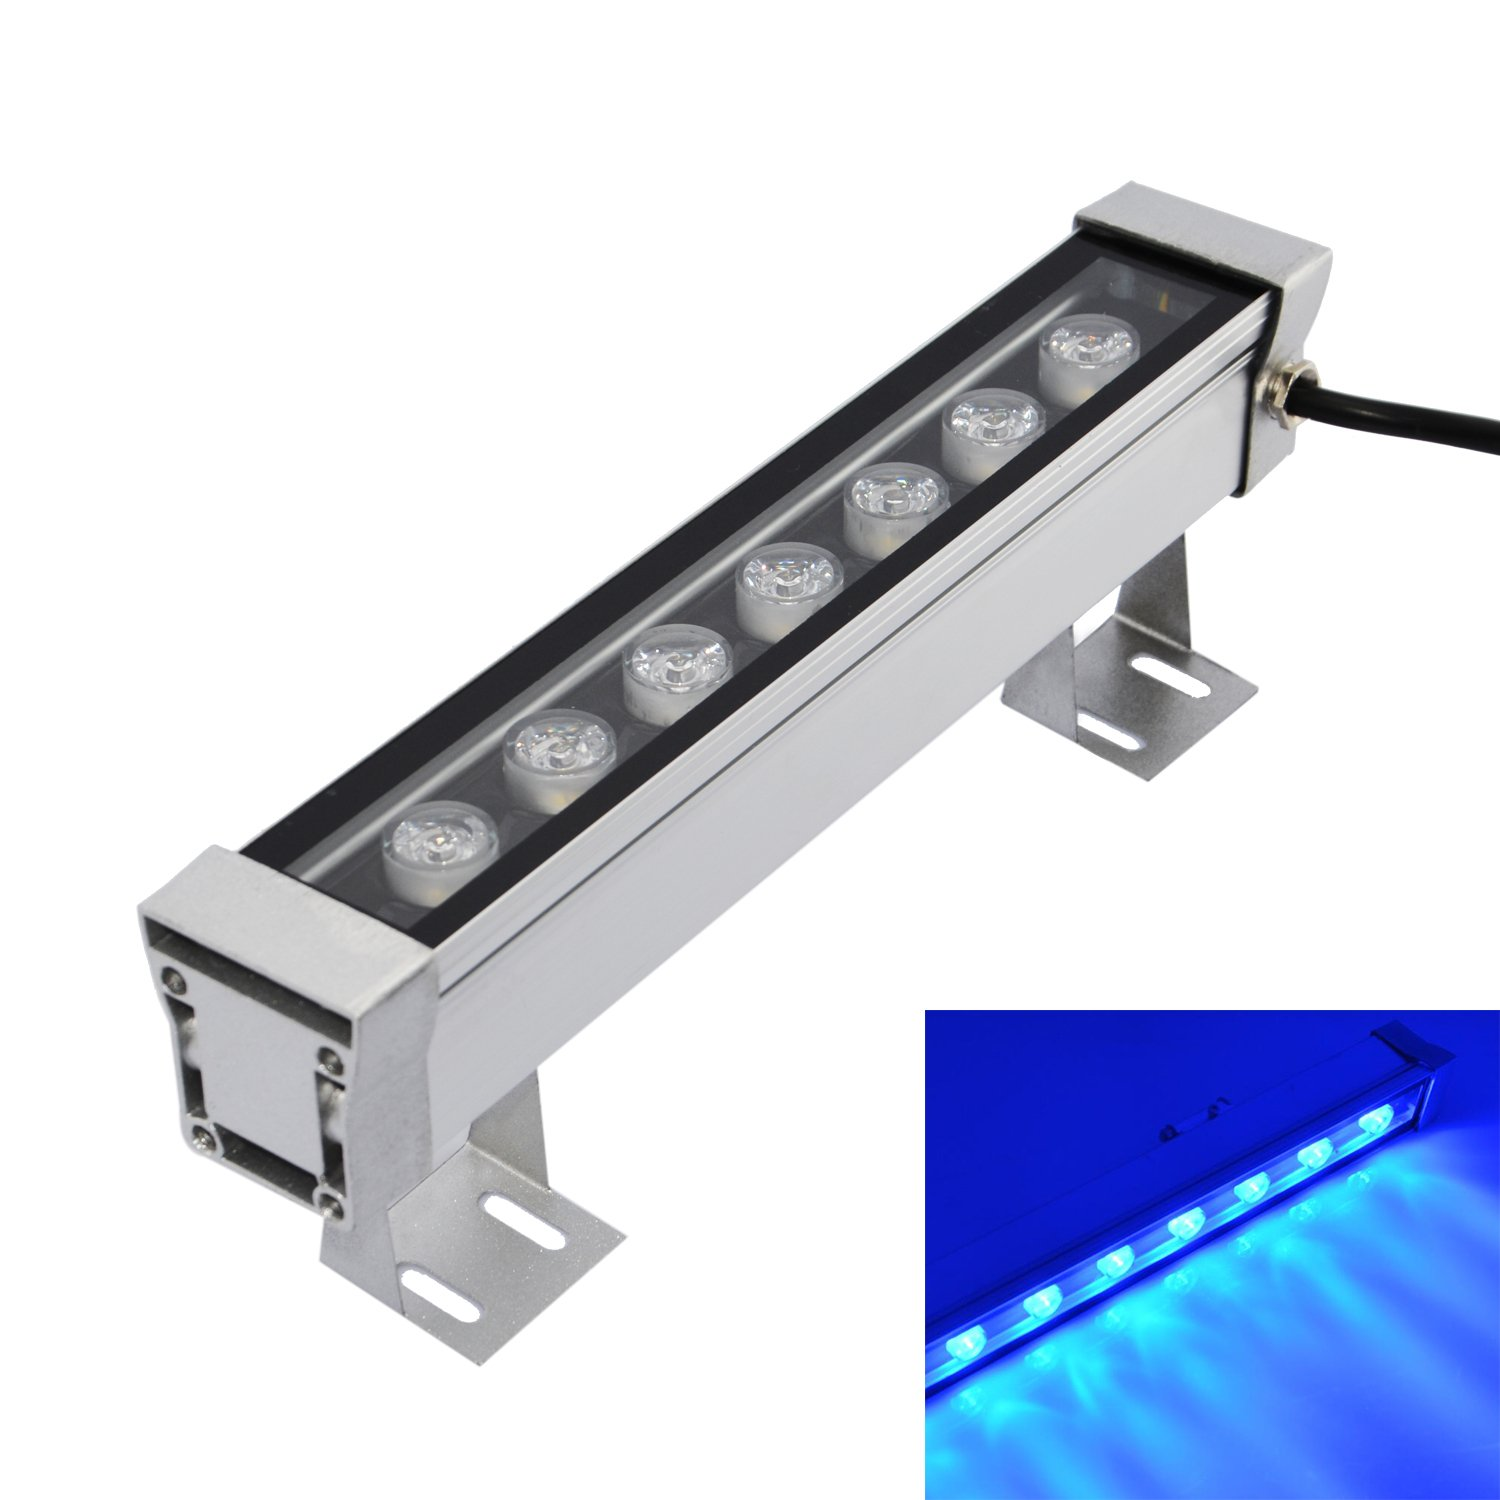 RSN LED Linear Wall Light 7W Wall Washer Blue Color Bar Aluminum Alloy DJ Stage Lighting Waterproof IP65 2 Years Warranty Disco Backlighting for Wedding, Restaurant, Church, Venues, Backyard Party